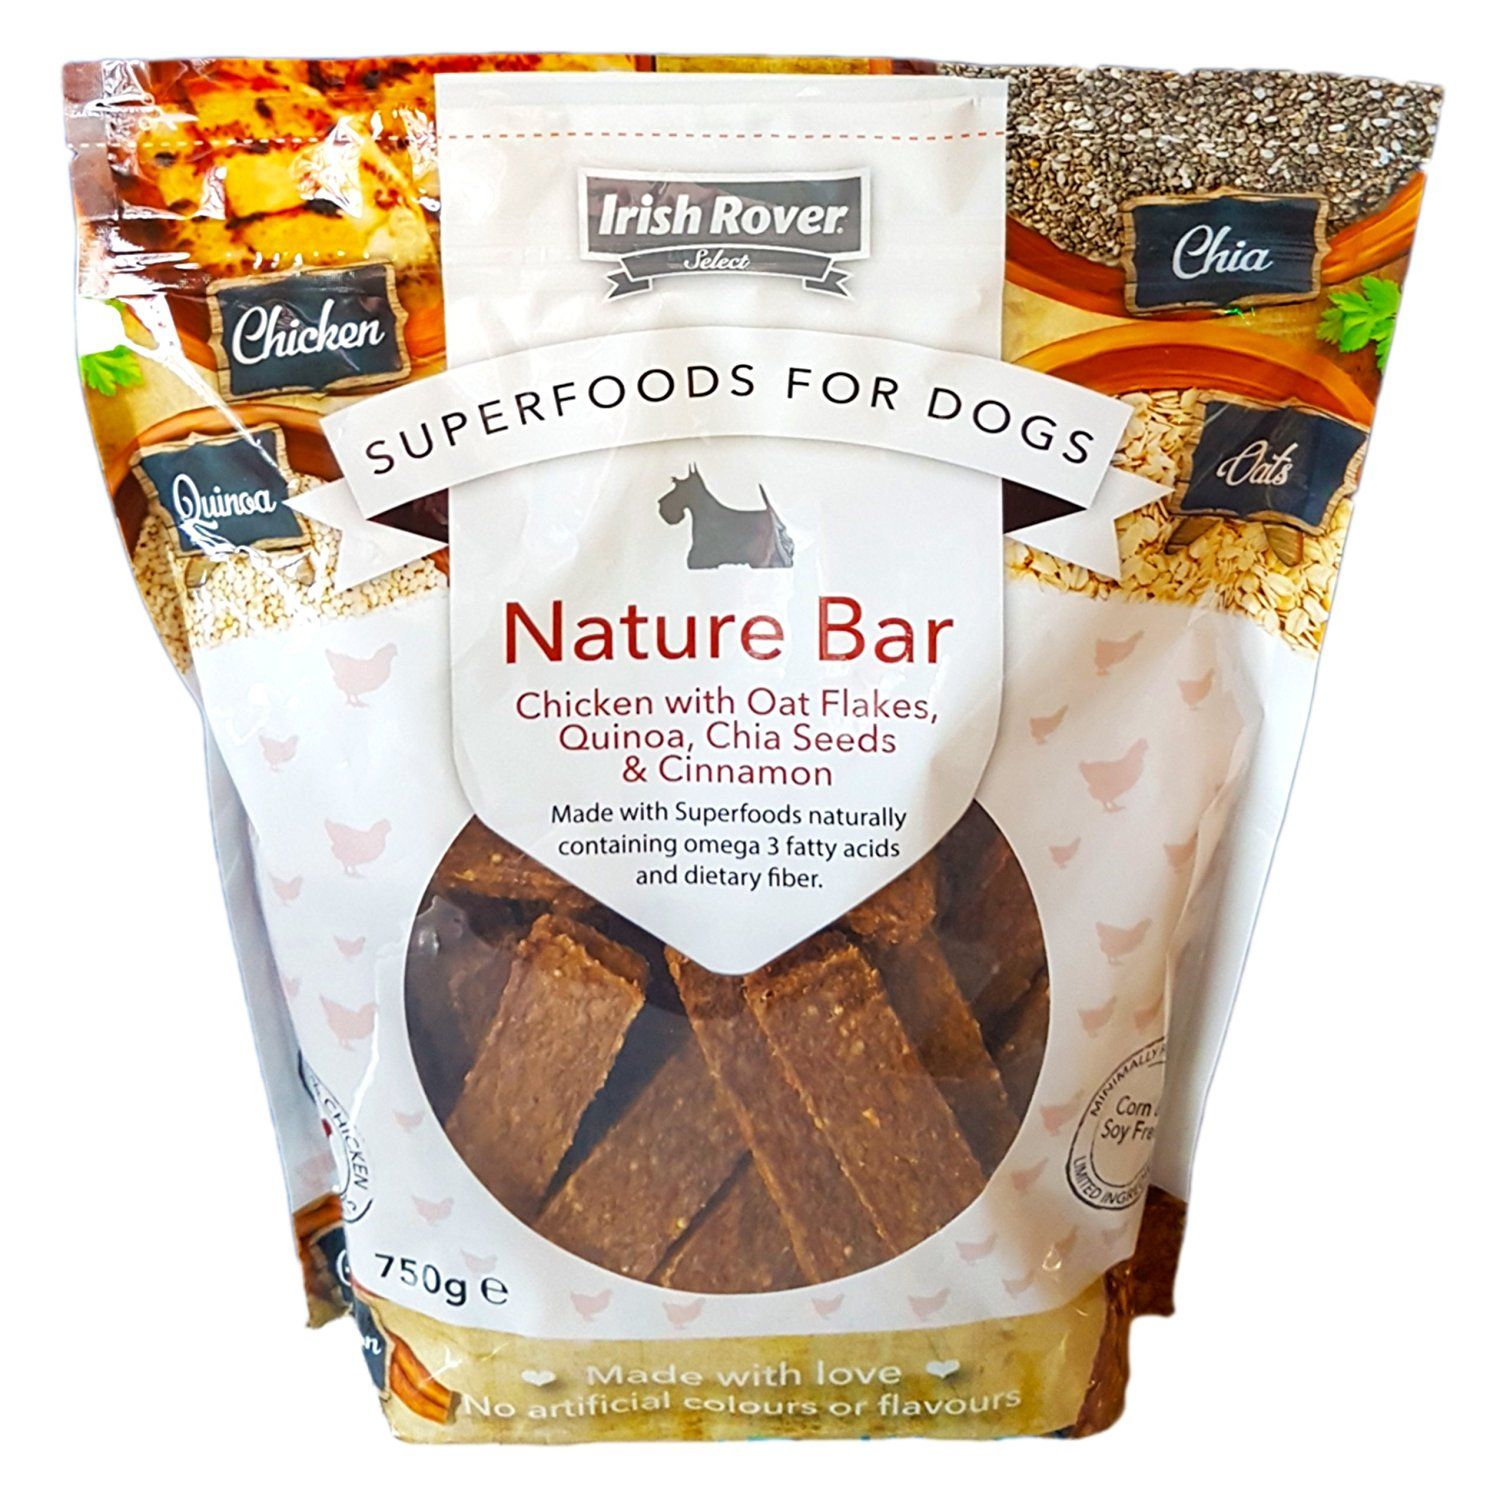 Irish Rover Superfoods For Dogs Chicken Meat Dog Treats